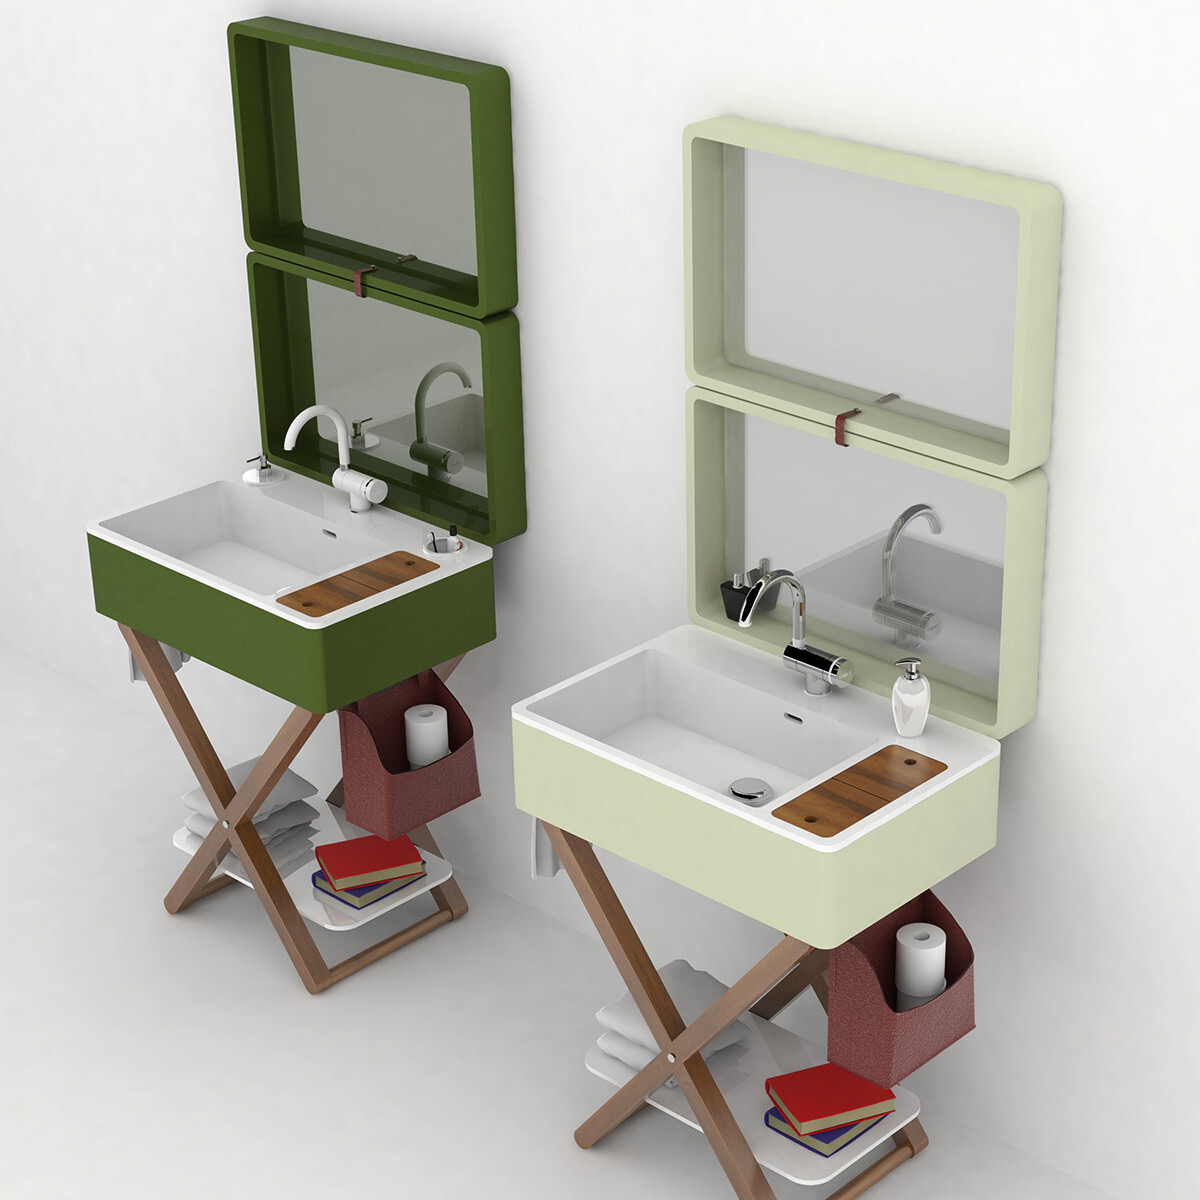 My bag portable bathroom by olympia ceramica - Mini meuble salle de bain ...